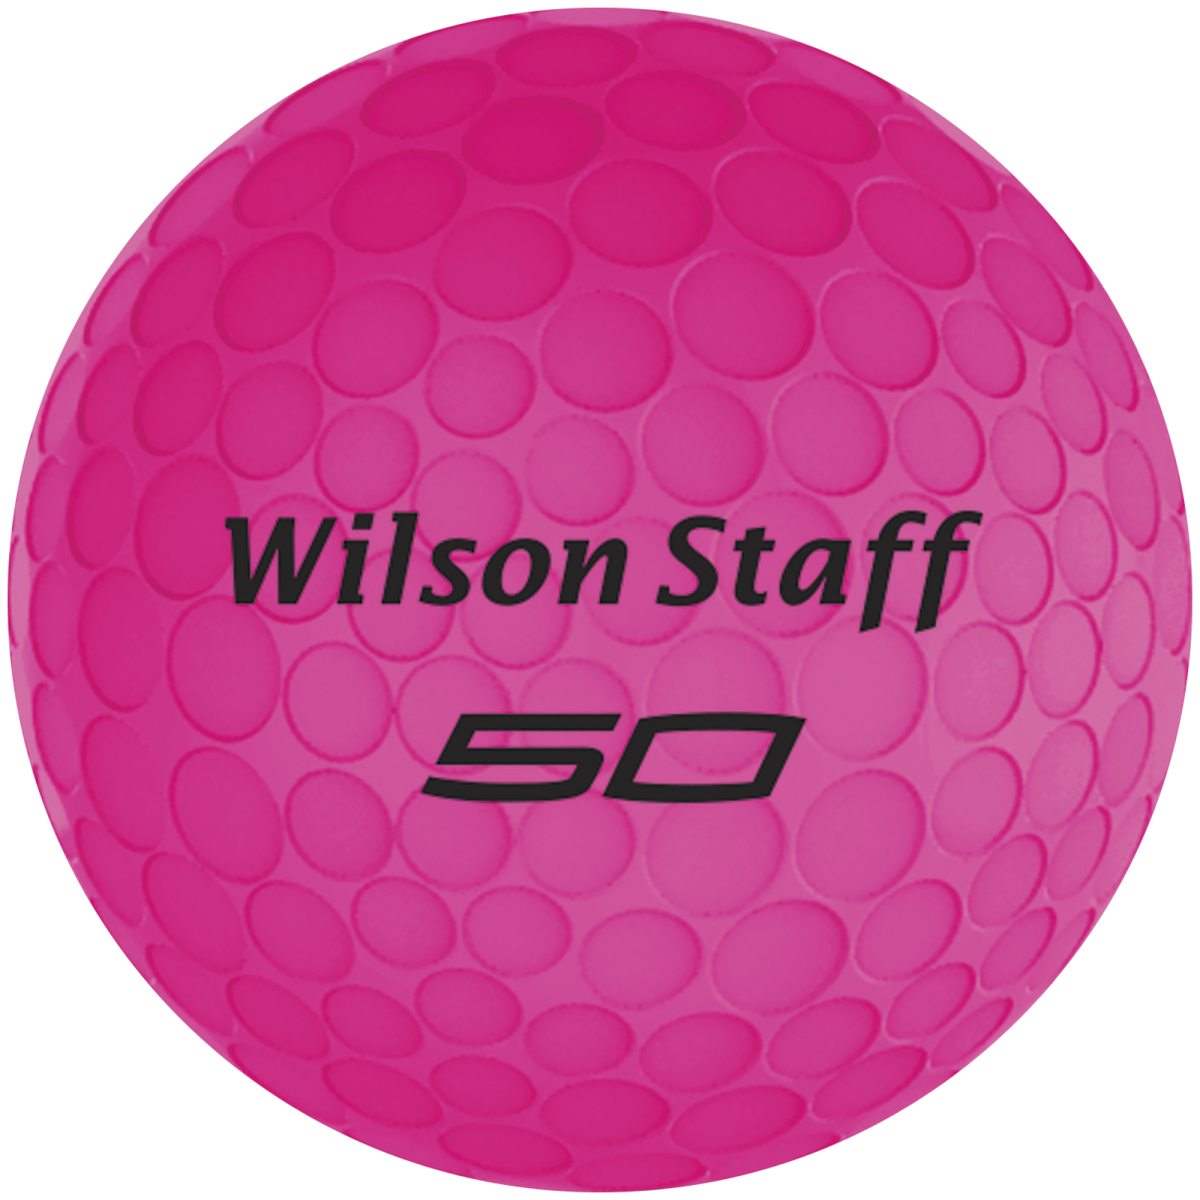 W/s Fifty Elite 12-ball Pink